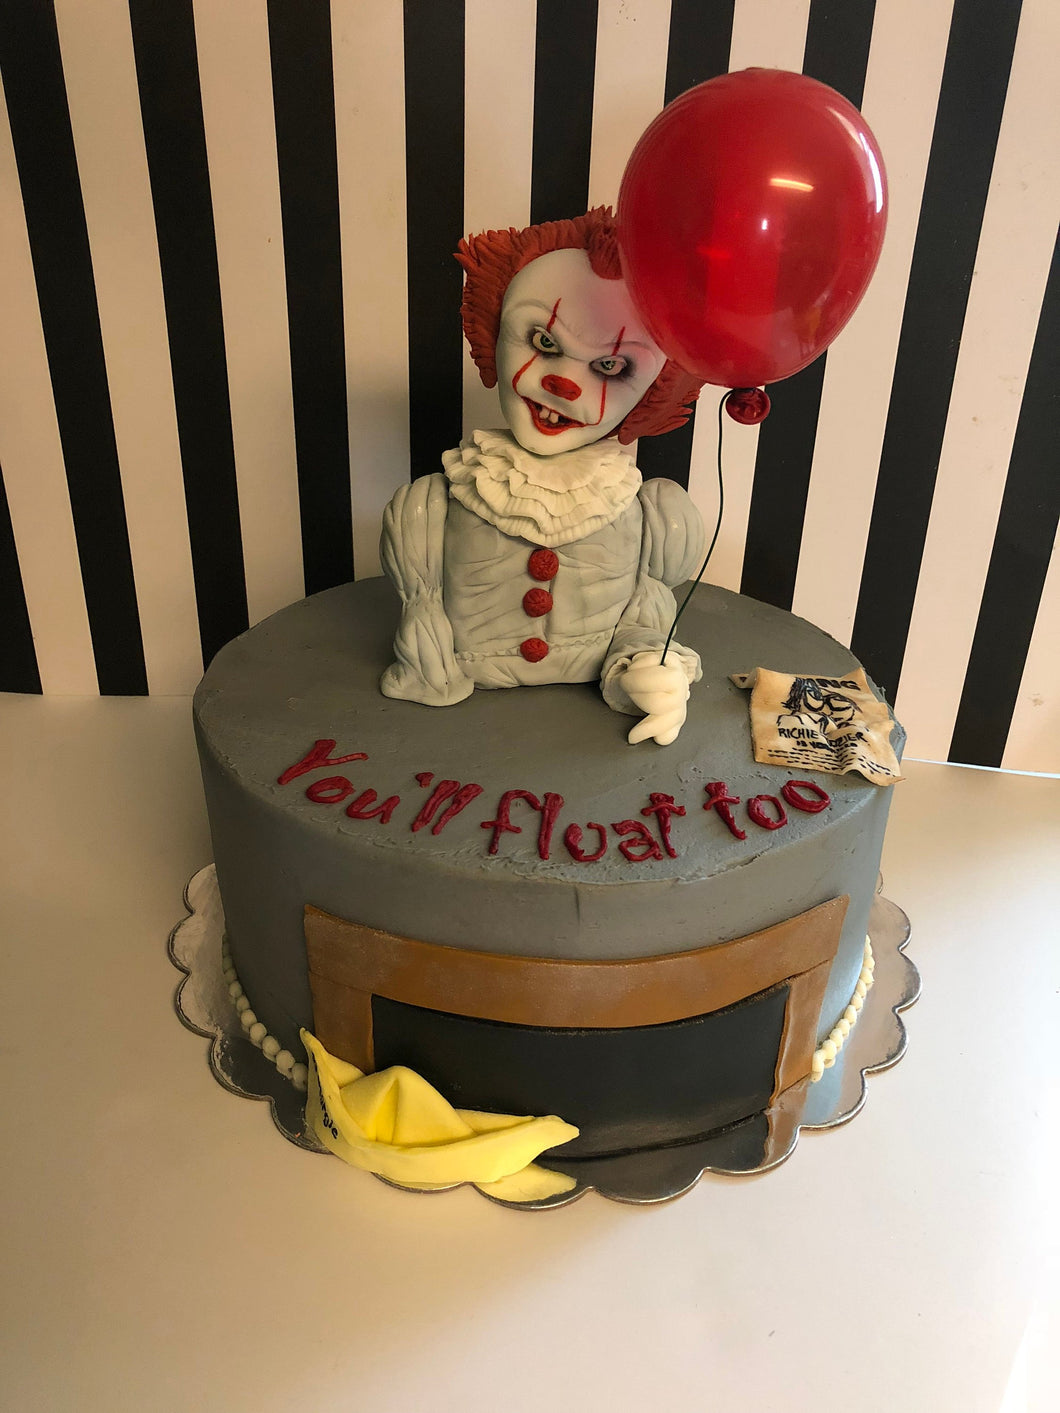 Pennywise Cake Decorating Kit